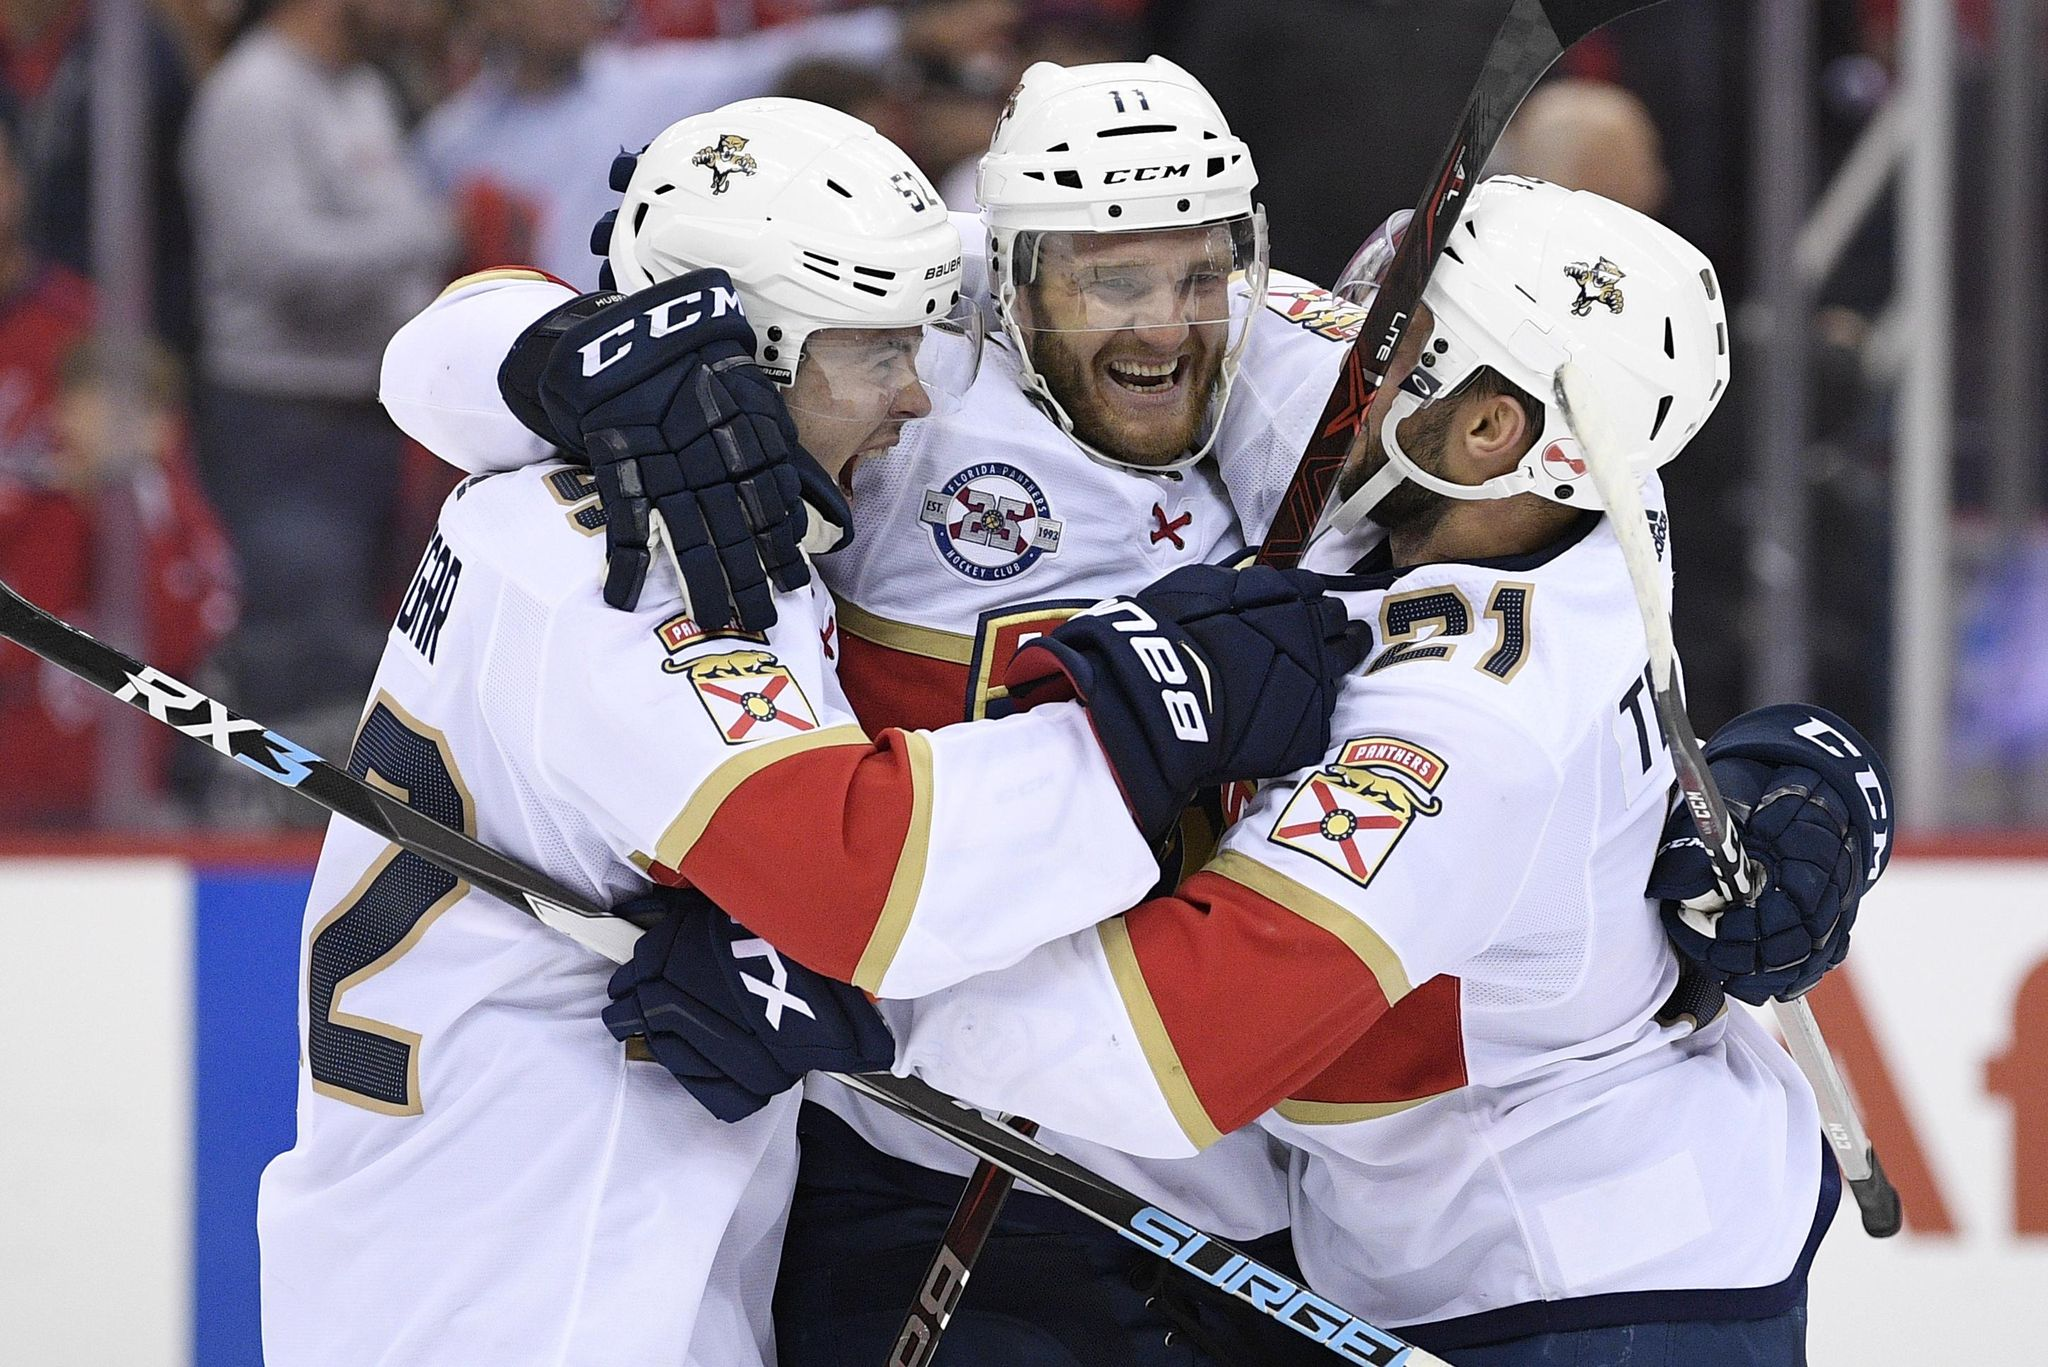 Panthers_capitals_hockey_02396_s2048x1367